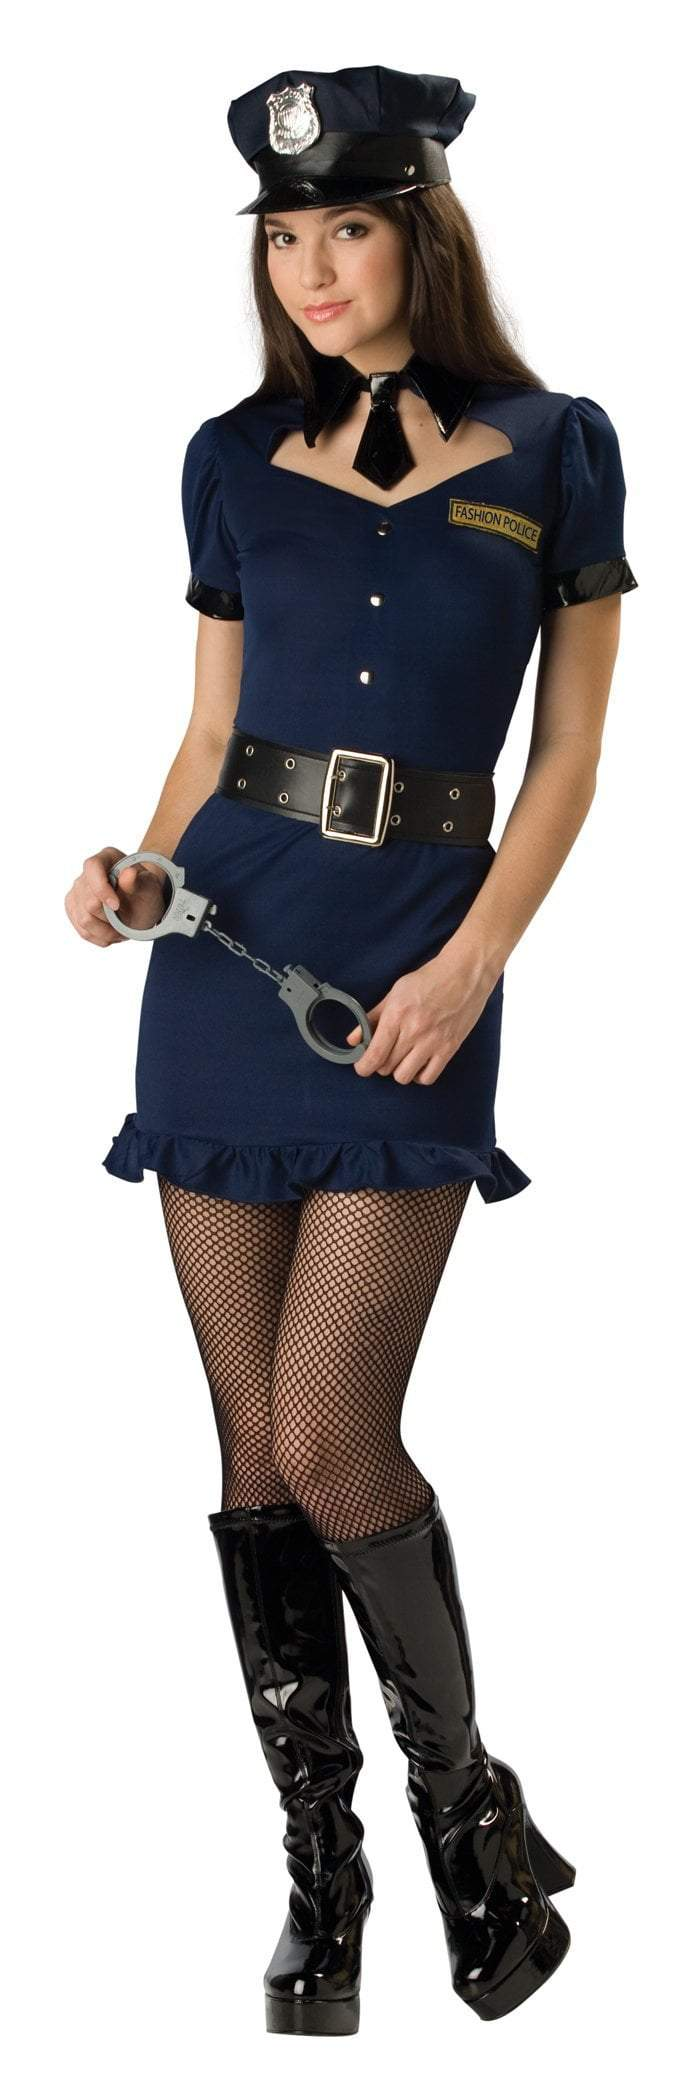 InCharacter Costumes LARGE (9-11) Teen Girls Fashion Police Costume